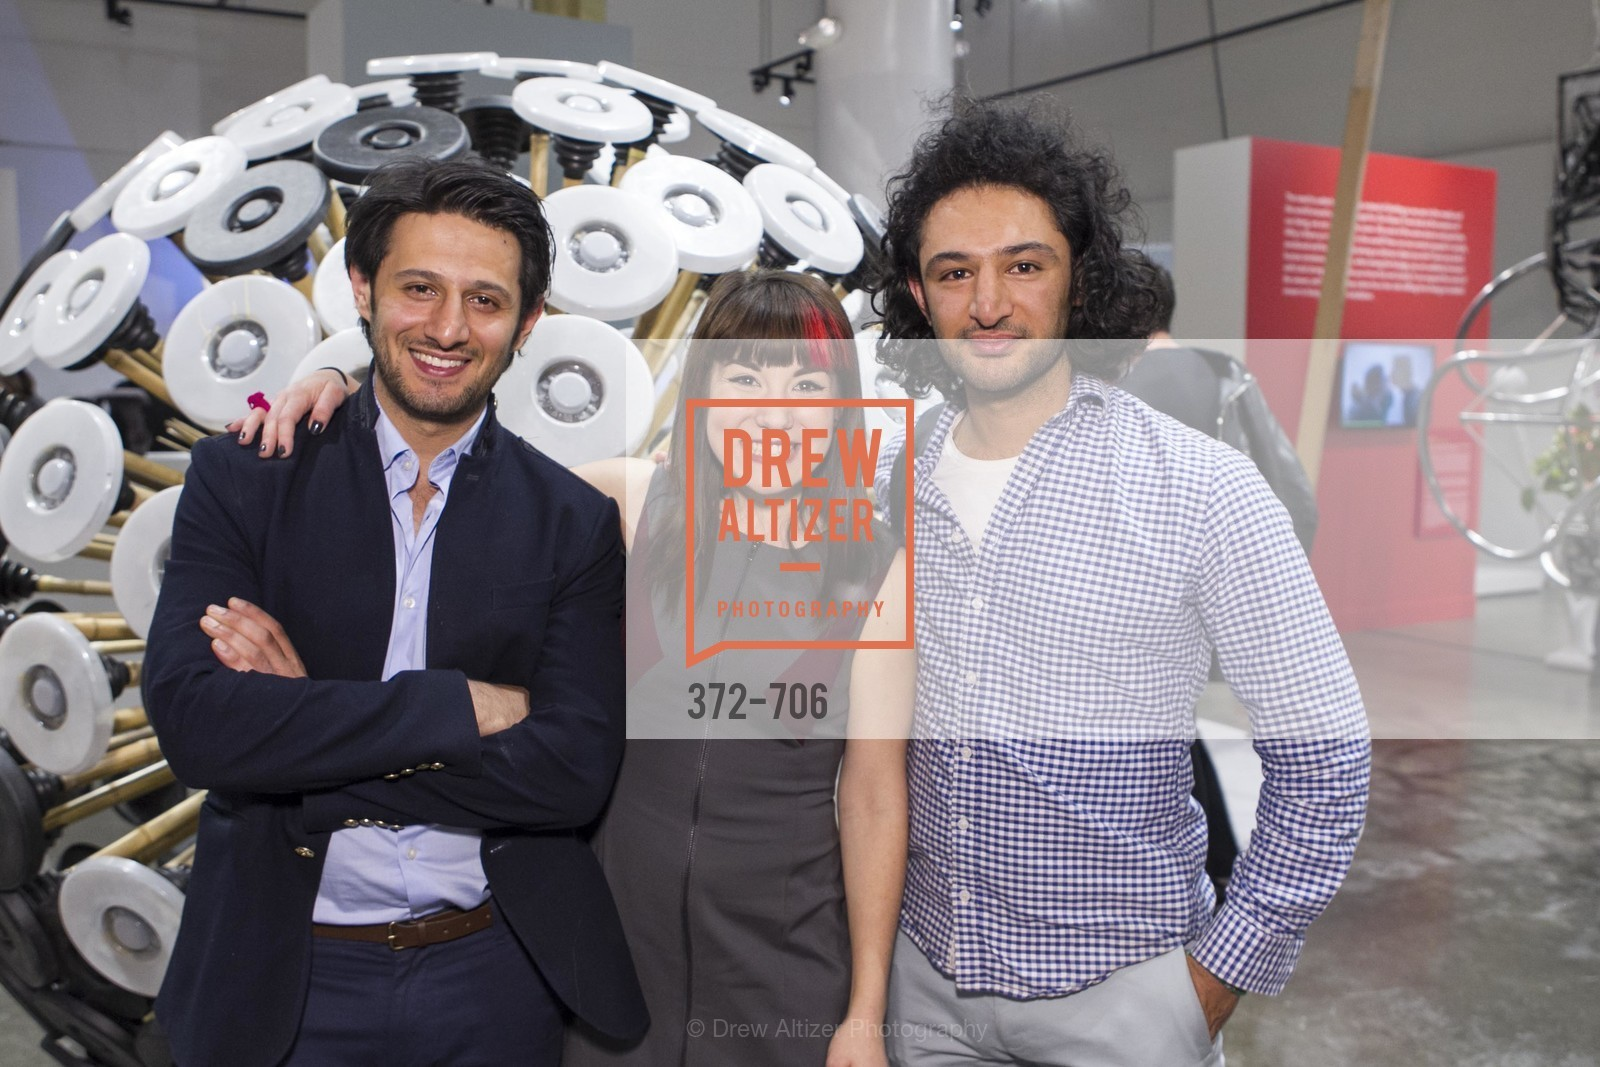 Mahmud Hassani, Ariel Zaccheo, Massoud Hassani, Exhibit Opening at the MUSEUM OF CRAFT AND DESIGN - Hands Off: New Dutch Design at the Confluence of Technology & Craft, US, May 8th, 2015,Drew Altizer, Drew Altizer Photography, full-service agency, private events, San Francisco photographer, photographer california